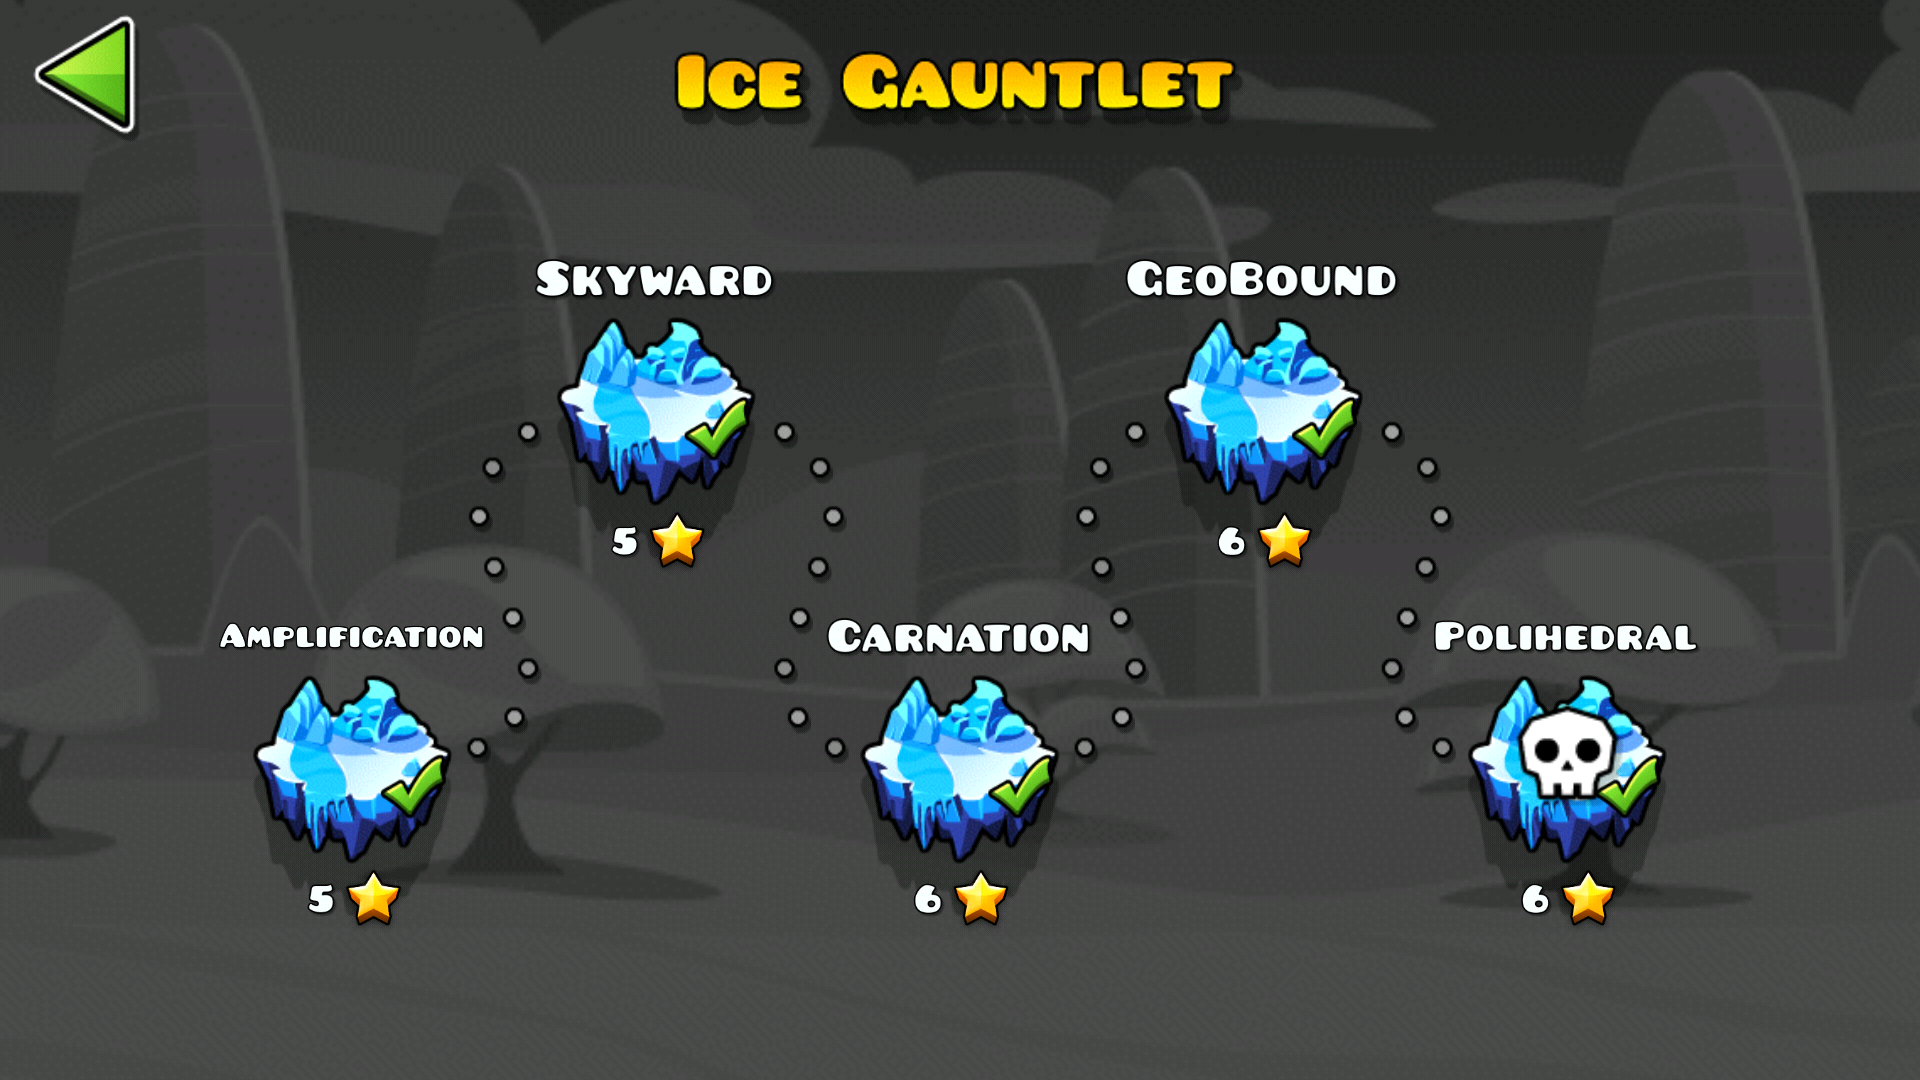 IceGauntlet.png